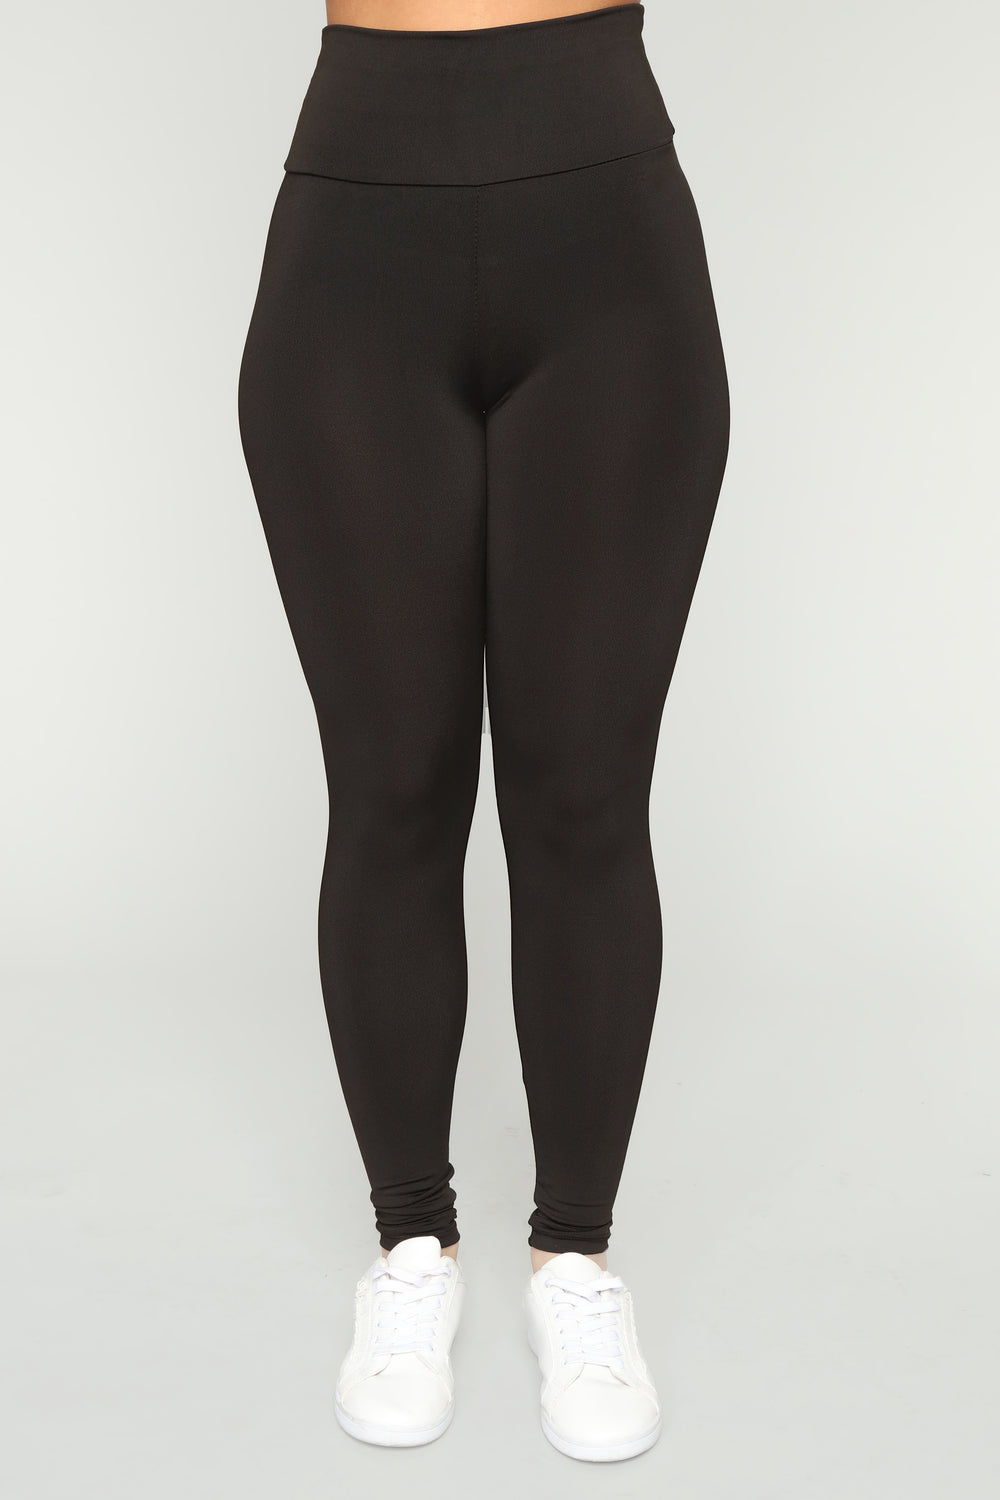 Kianna Active Leggings - Black